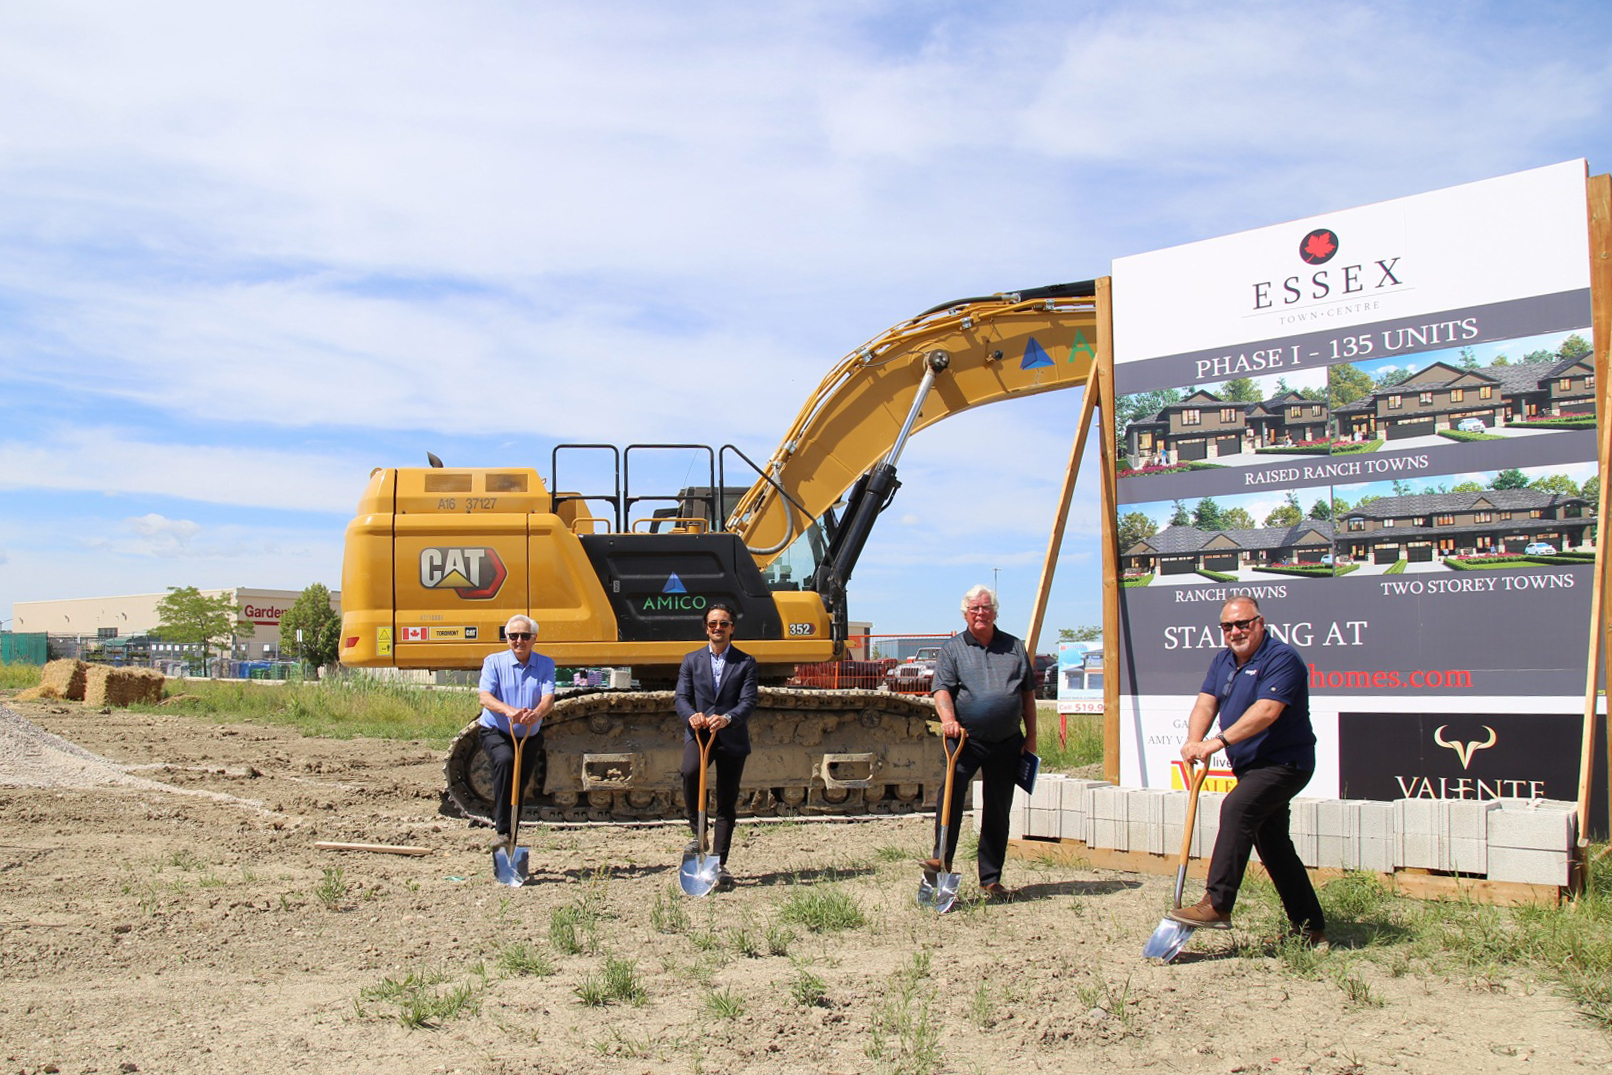 Four people with shovels in the ground at a construction site for a new residential development in the Town of Essex. A sign and backhoe are pictured in the background.